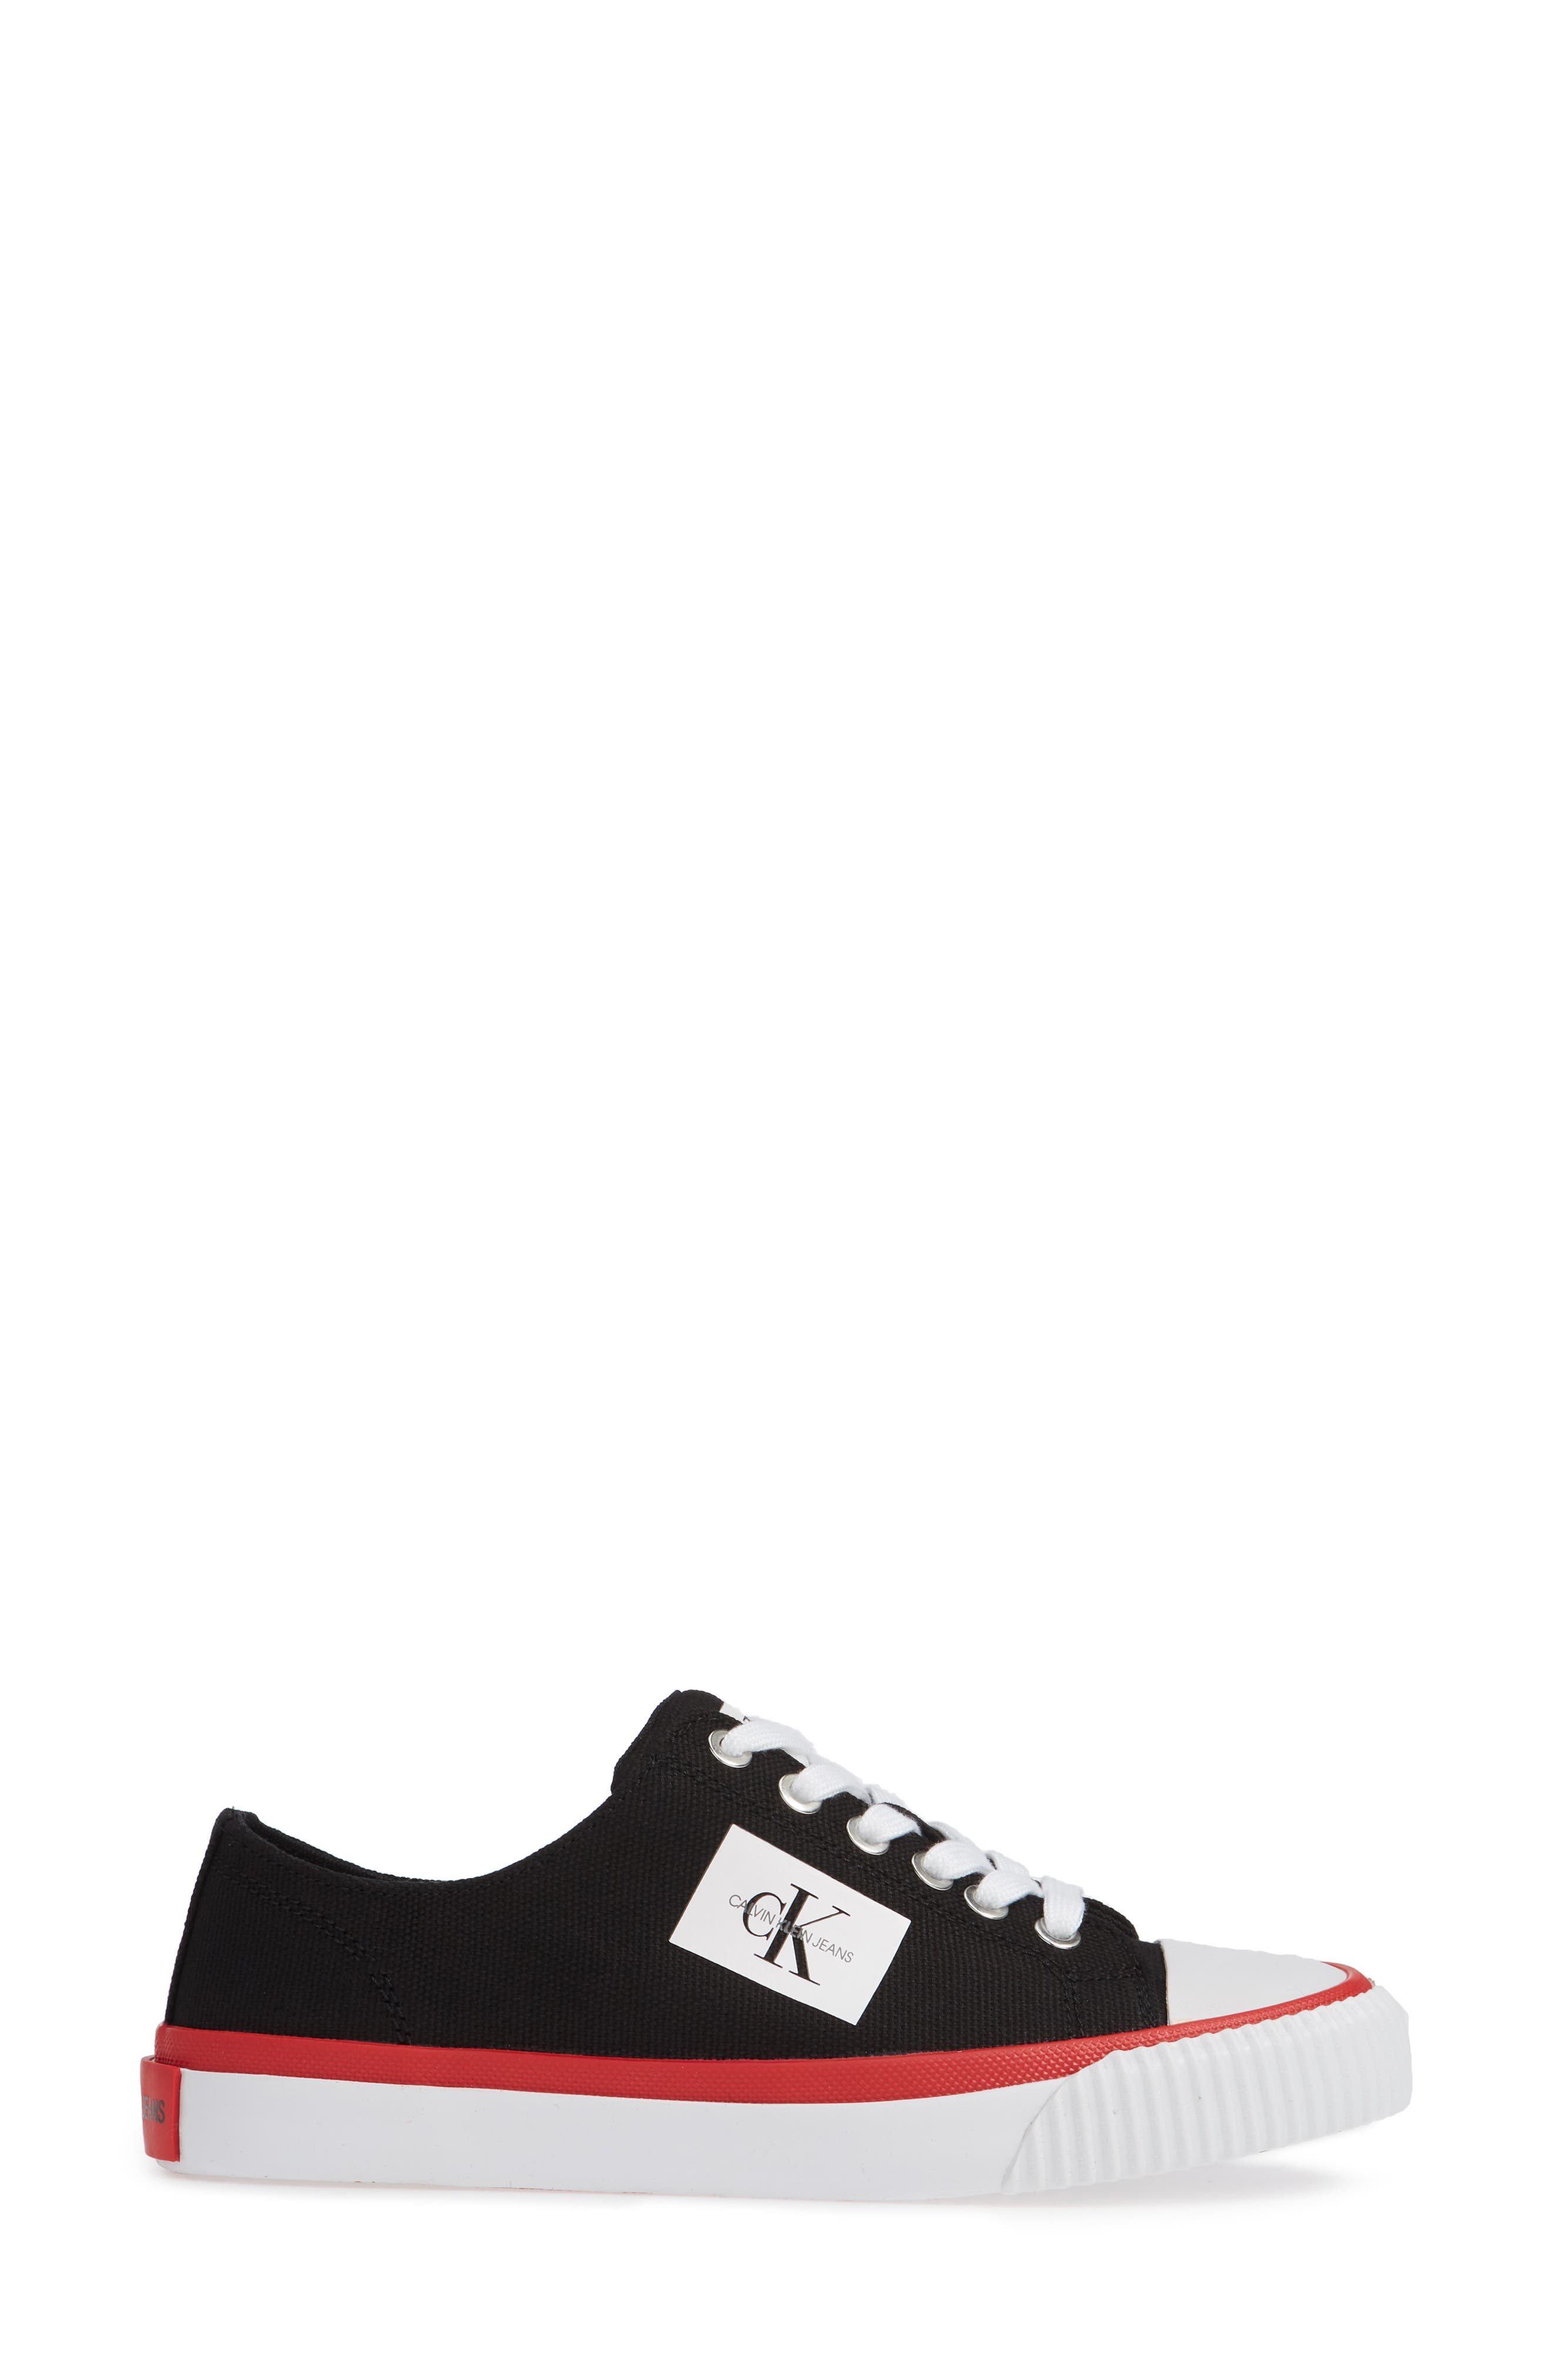 Ivory Lace-Up Sneaker,                             Alternate thumbnail 3, color,                             001